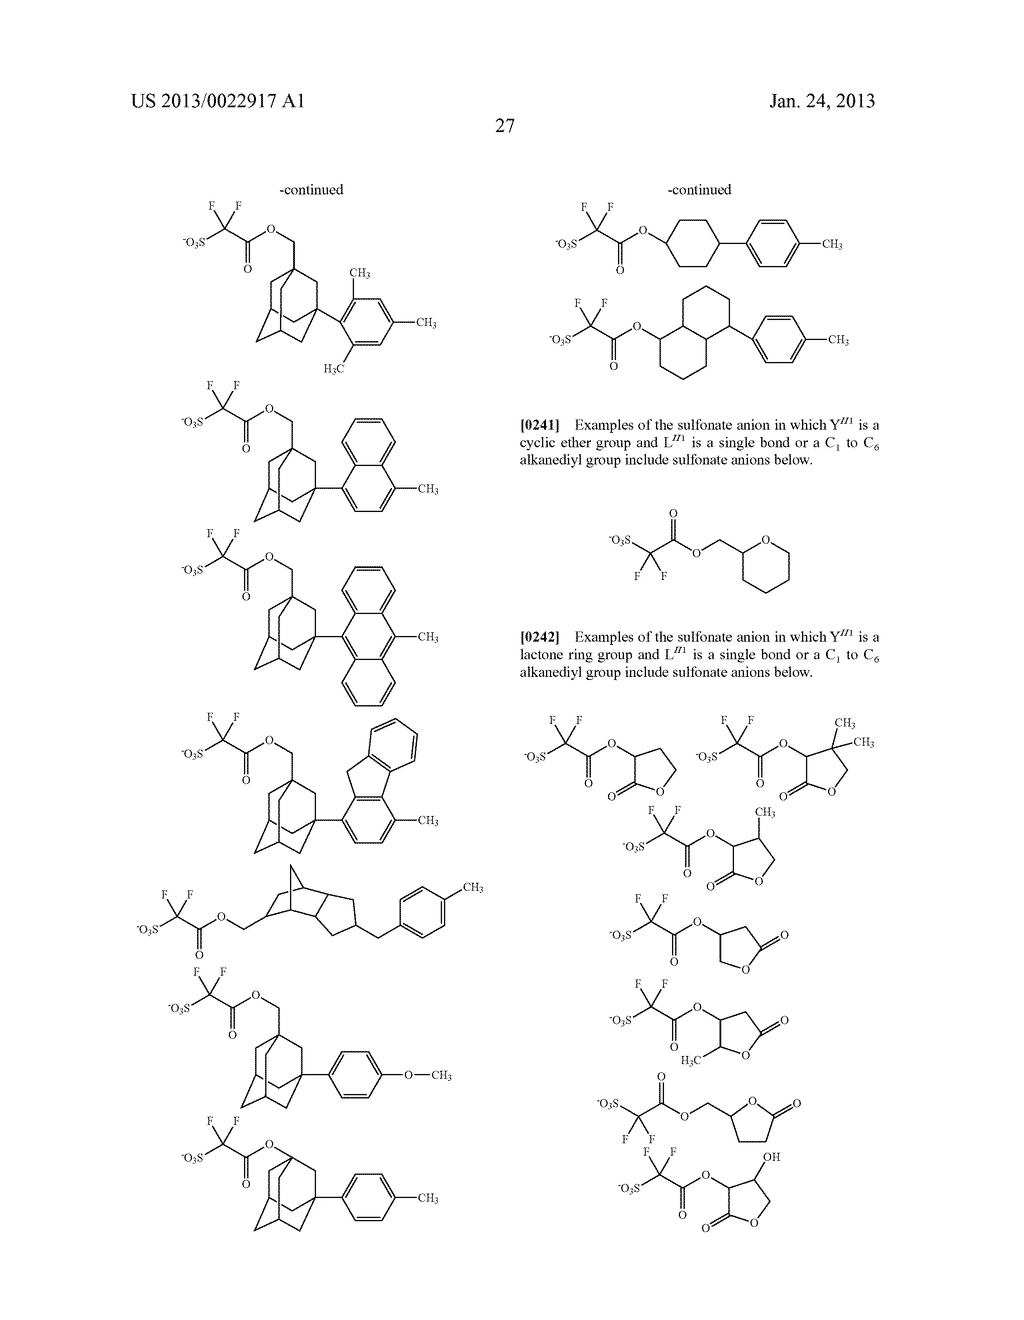 RESIST COMPOSITION AND METHOD FOR PRODUCING RESIST PATTERN - diagram, schematic, and image 28